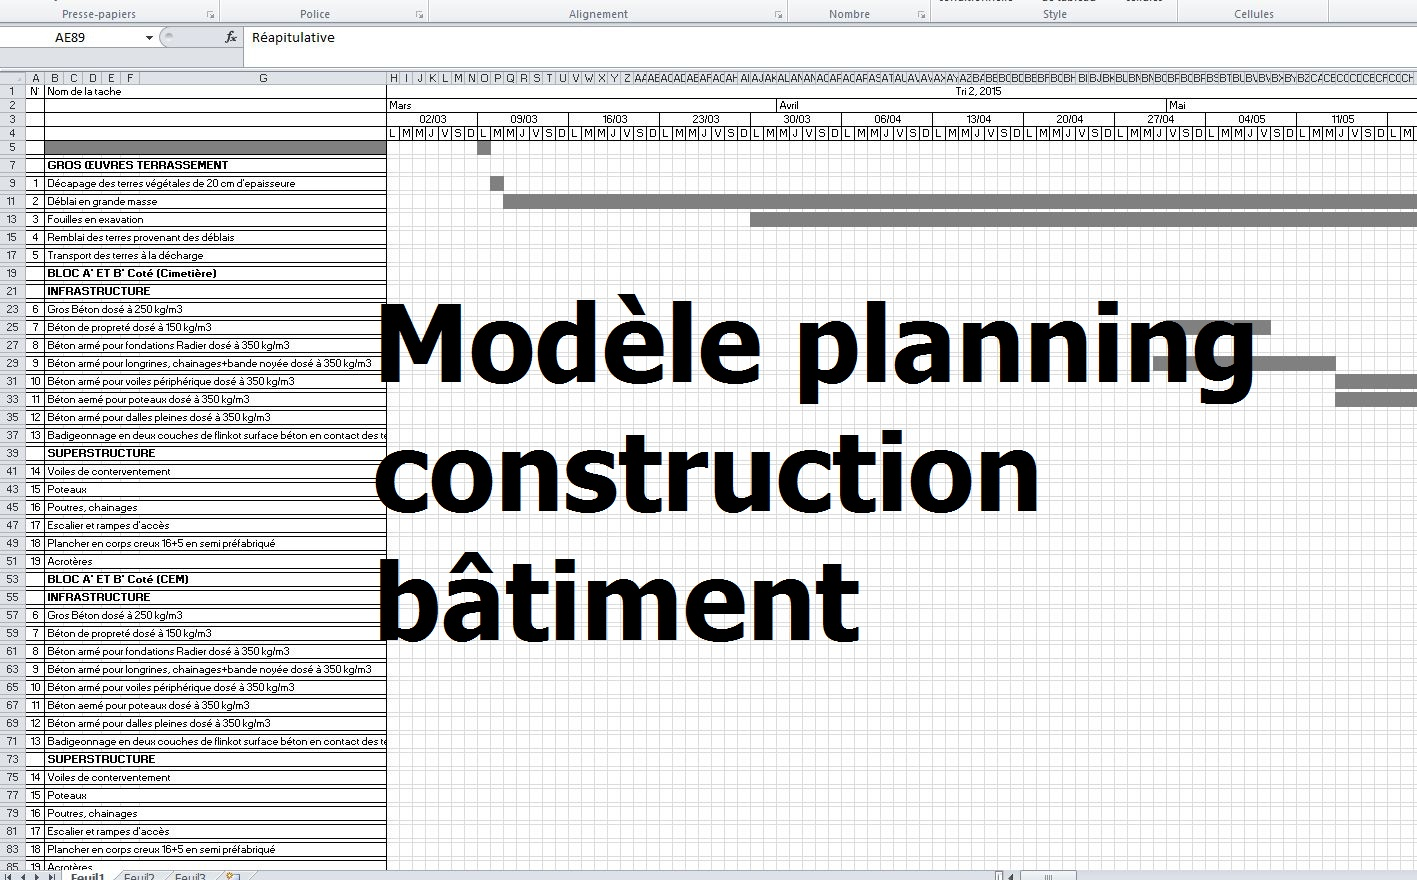 Berühmt exemple de modèle planning travaux construction bâtiment - excel  NO47